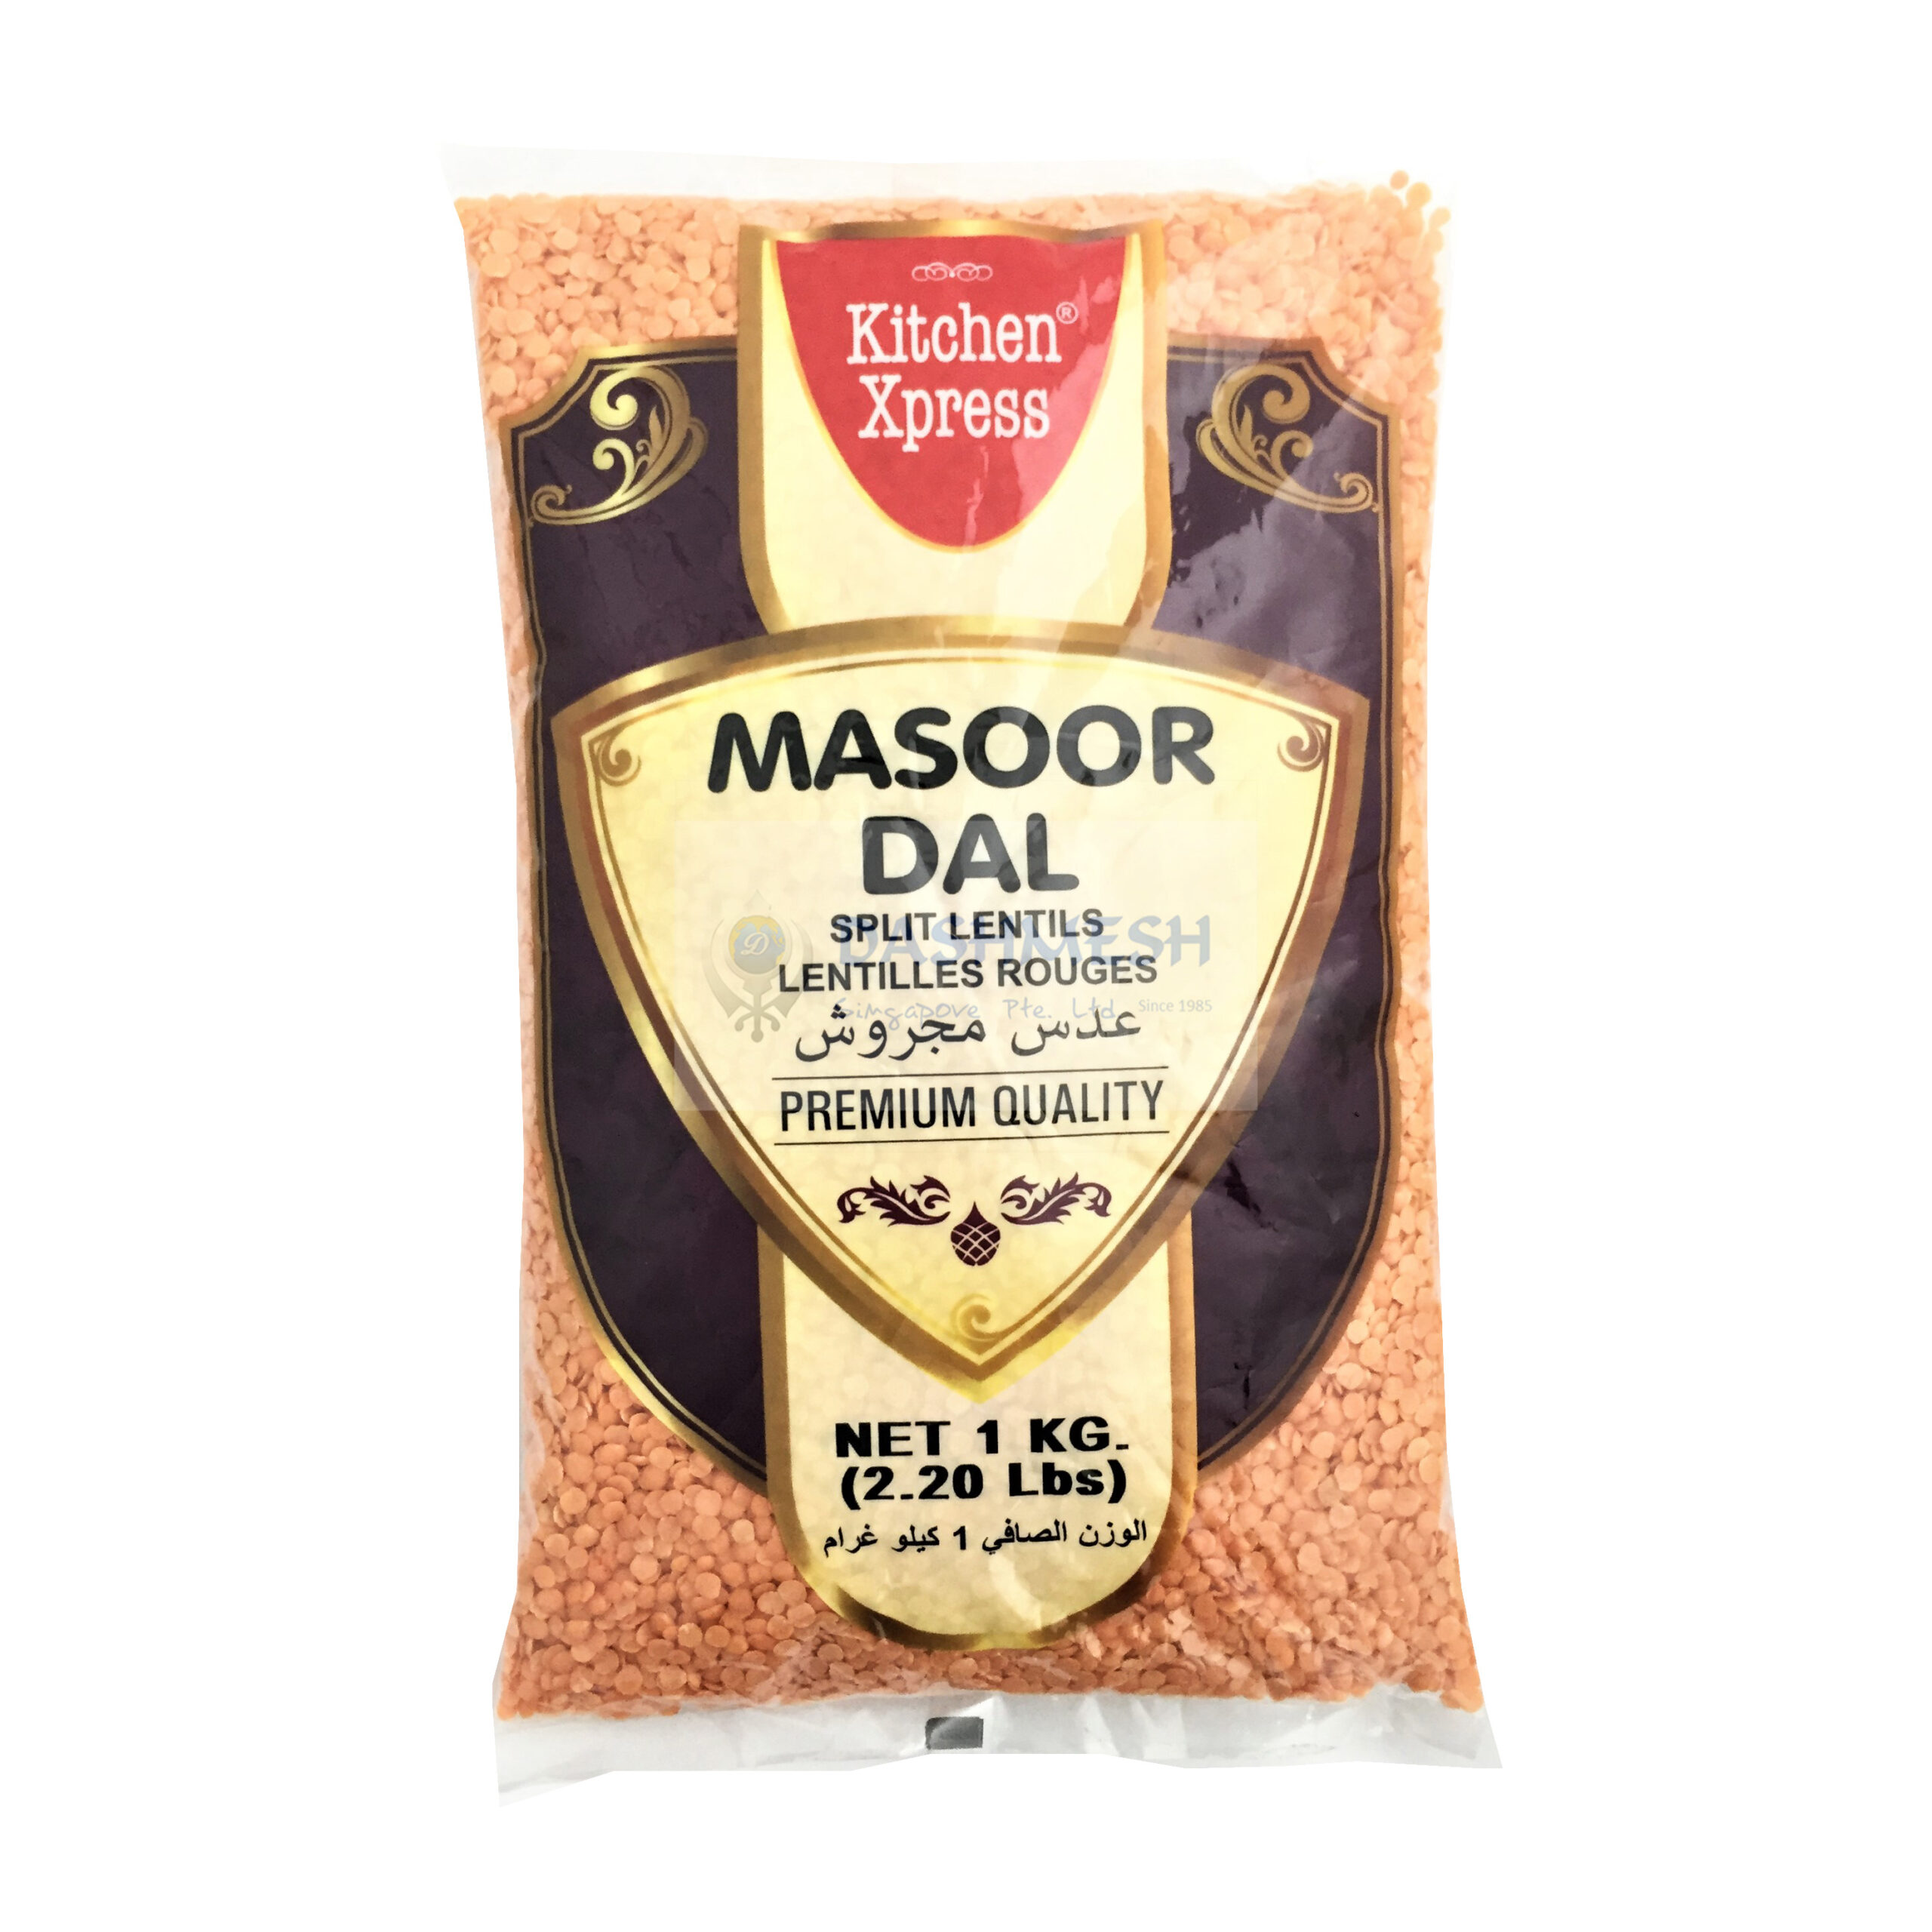 Kitchen Xpress Masoor Dal Split 500g, 1Kg & 5Kg